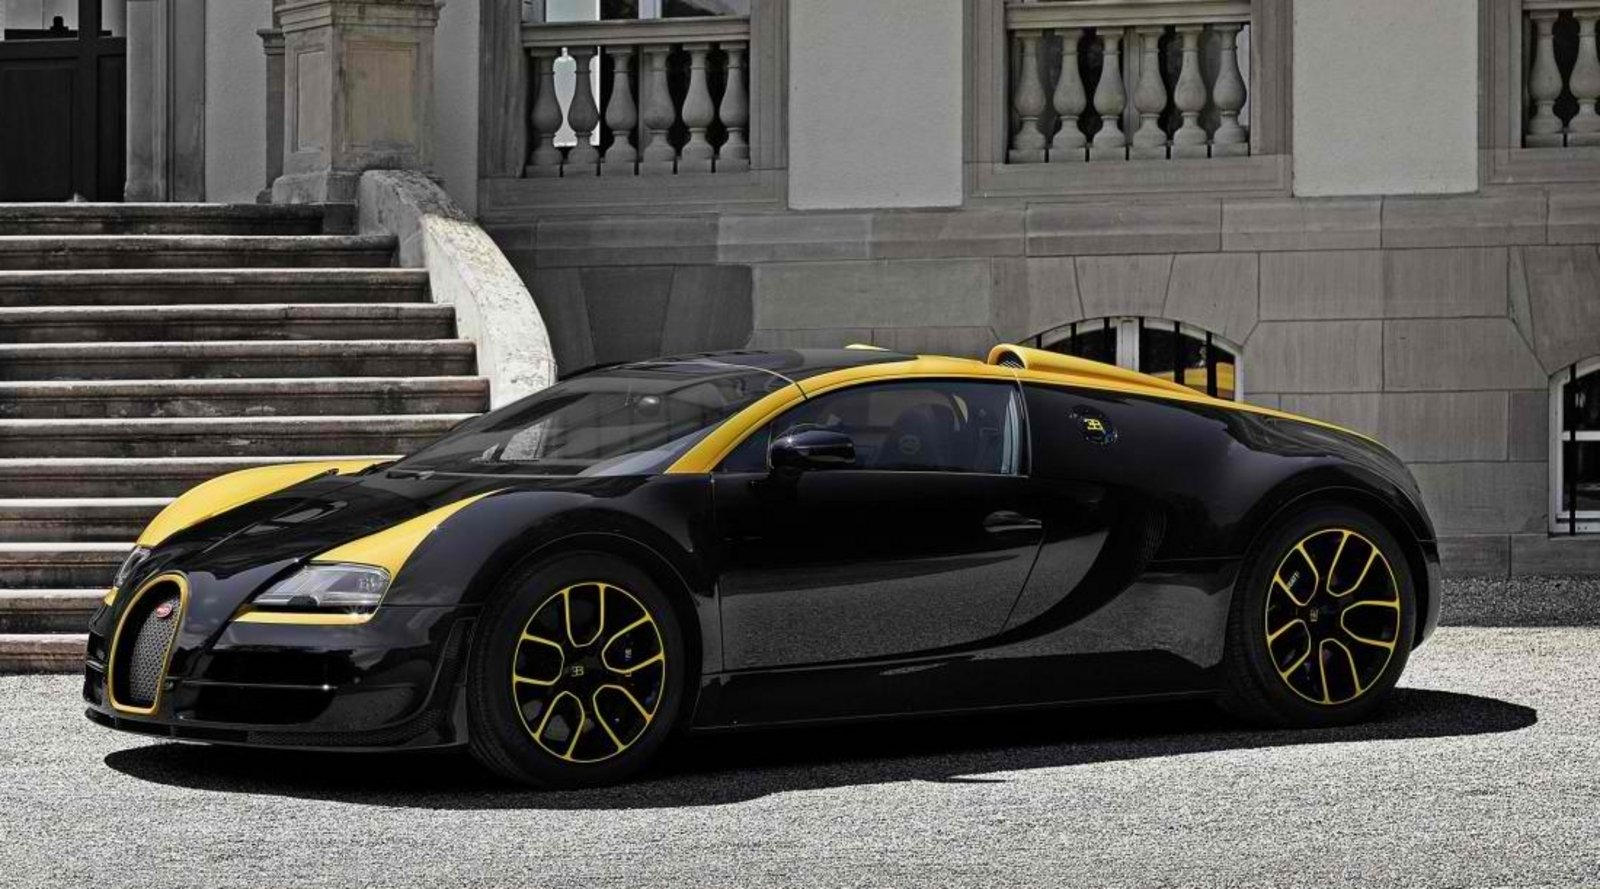 2014 bugatti veyron grand sport vitesse 1 of 1 review. Black Bedroom Furniture Sets. Home Design Ideas